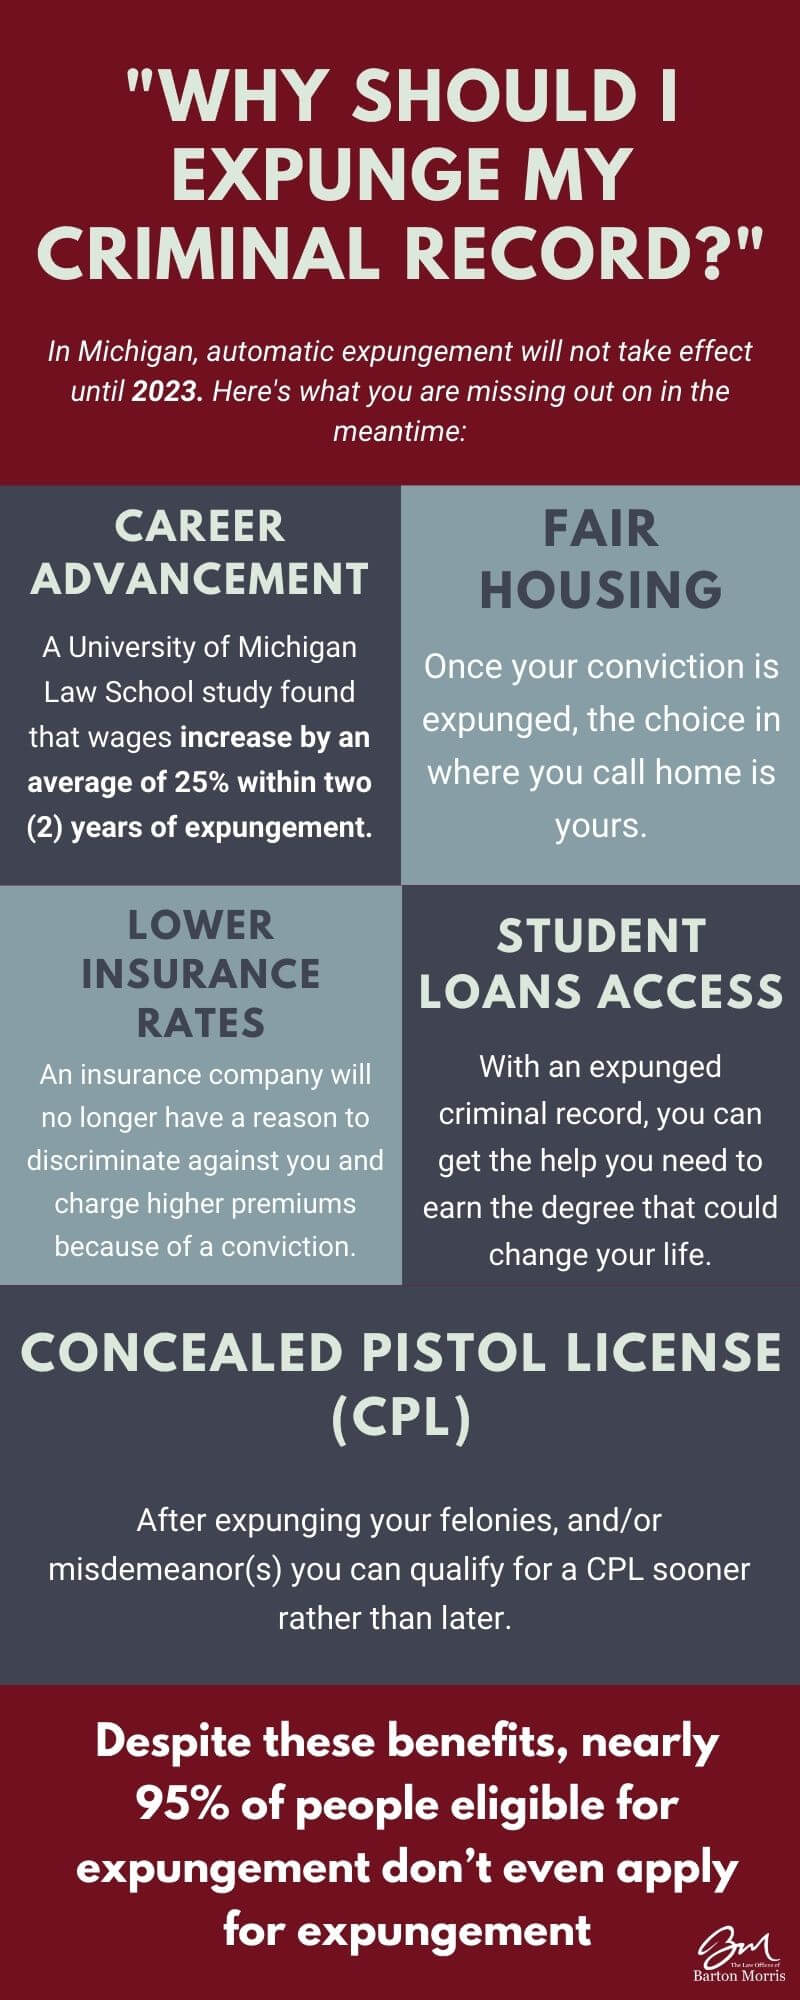 Why Should I Expunge My Criminal Record? Infographic